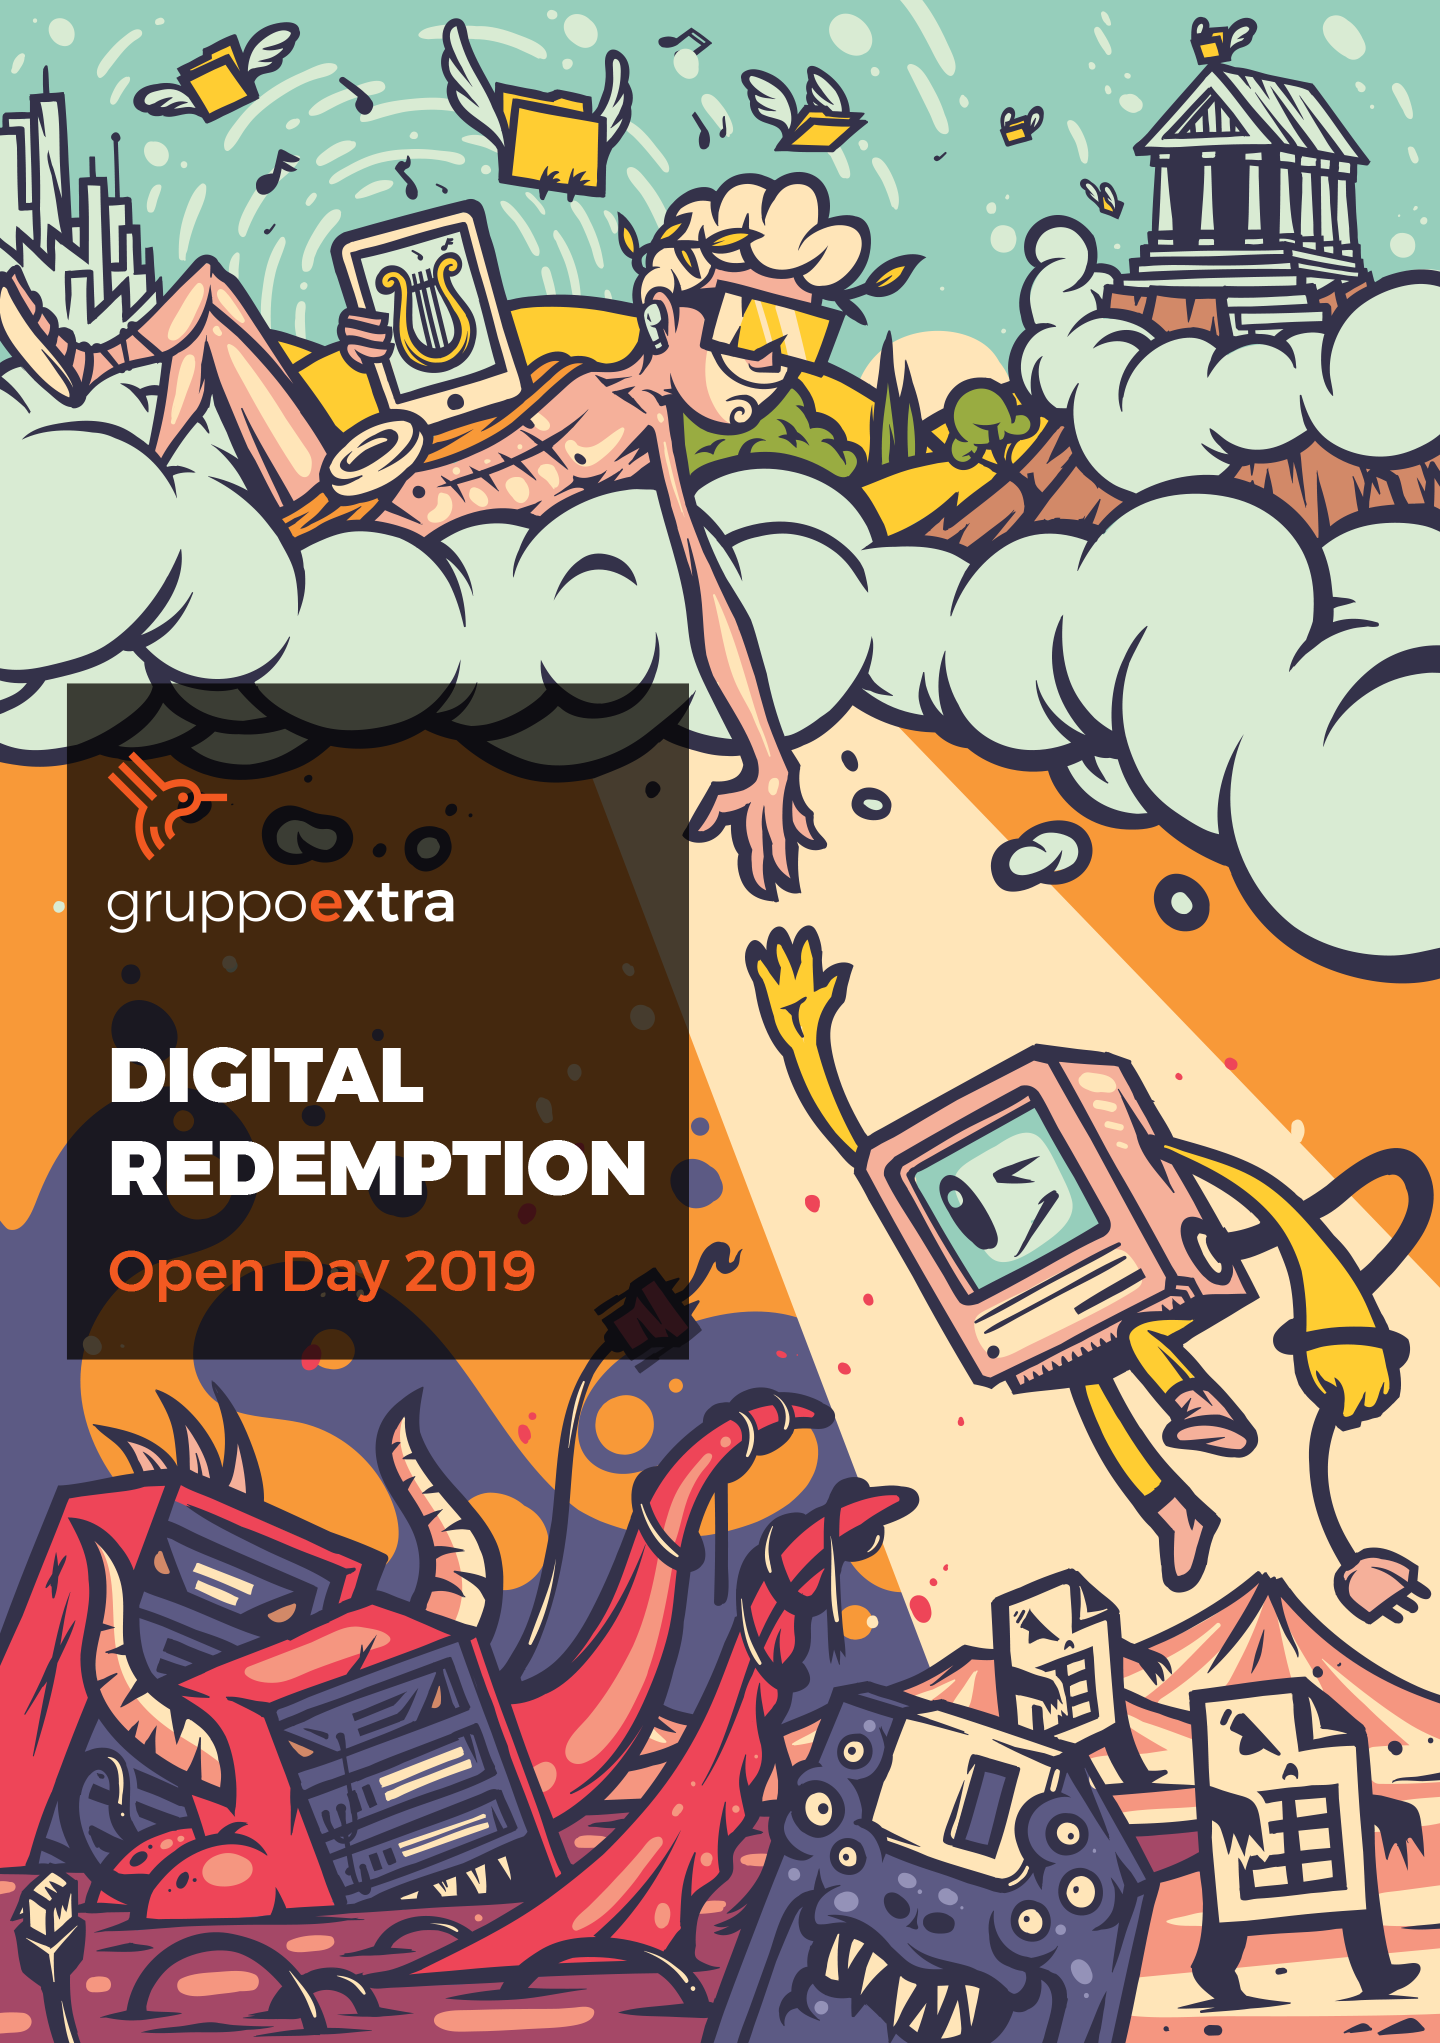 Extra Open Day 2019, Digital Redemption